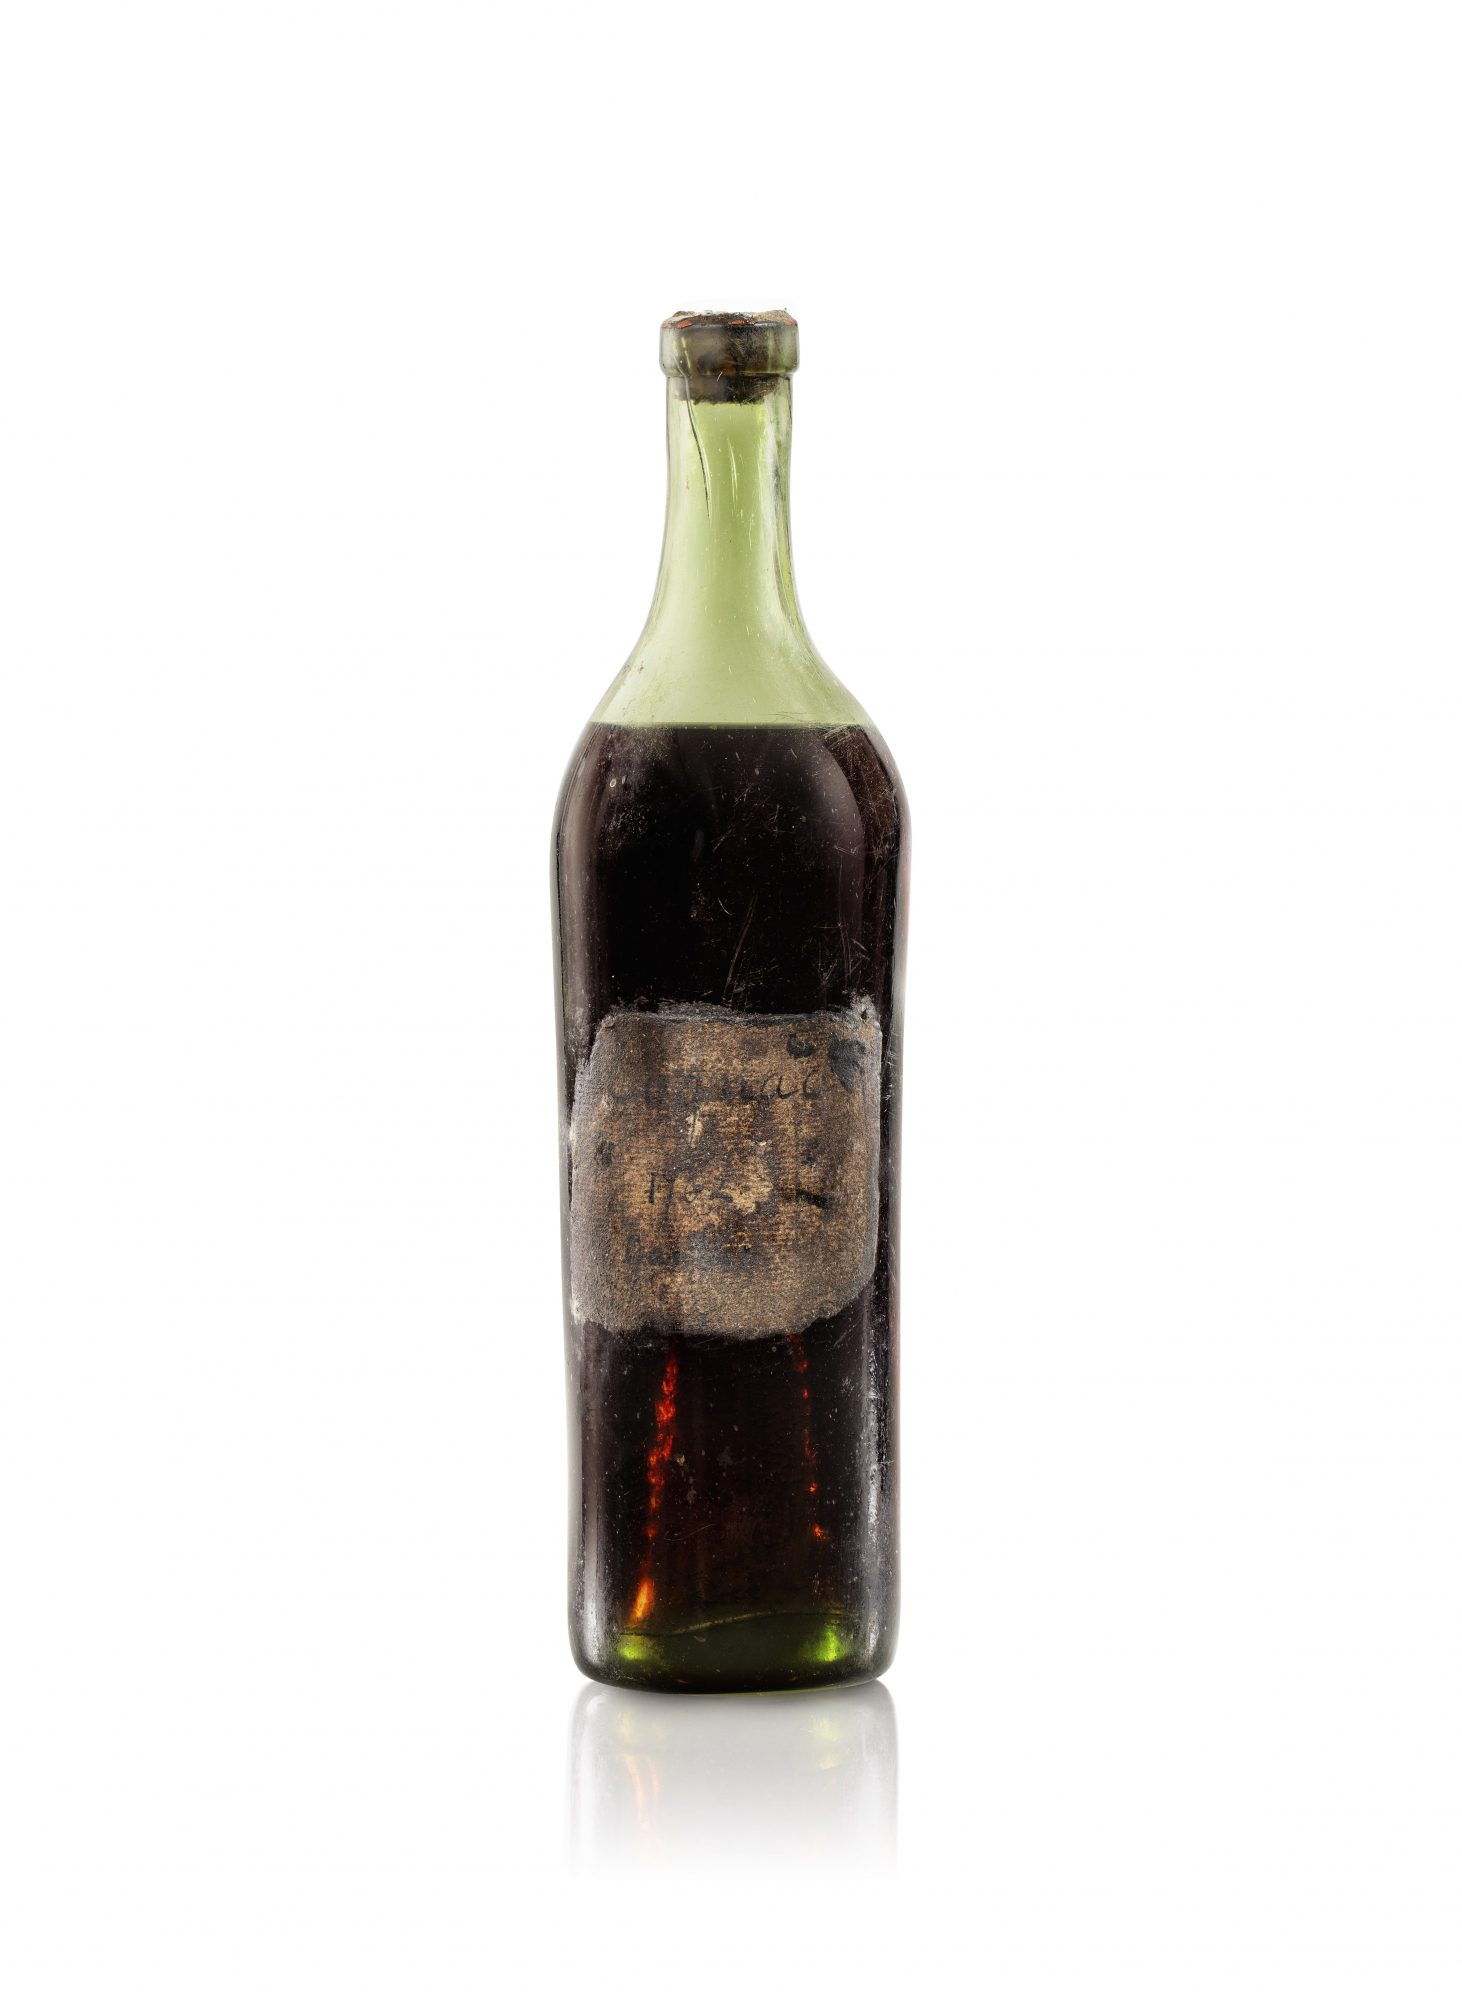 gautier cognac sold at auction